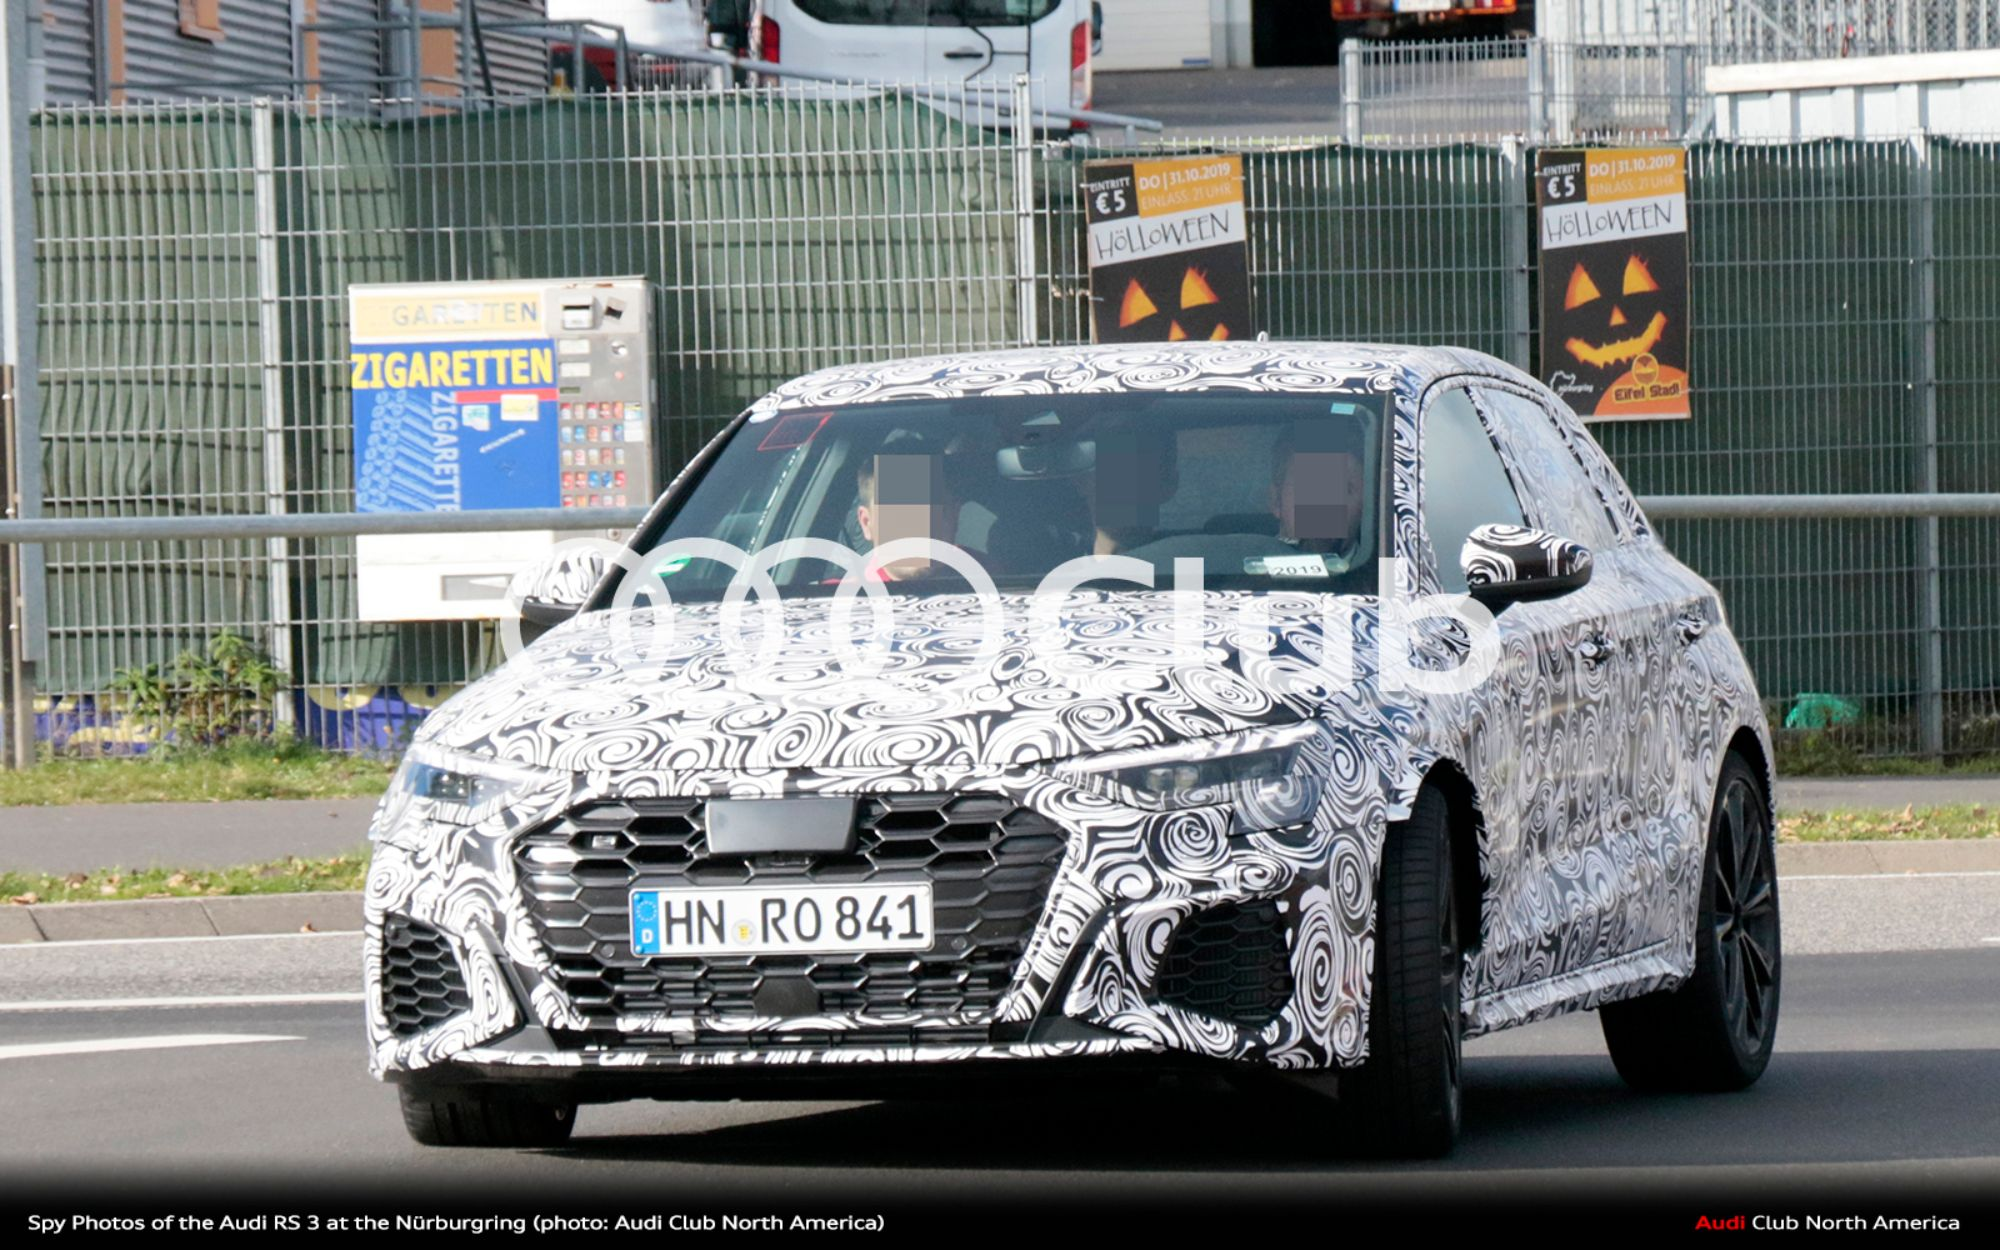 Spy Photos of the Audi RS 3 at the Nürburgring